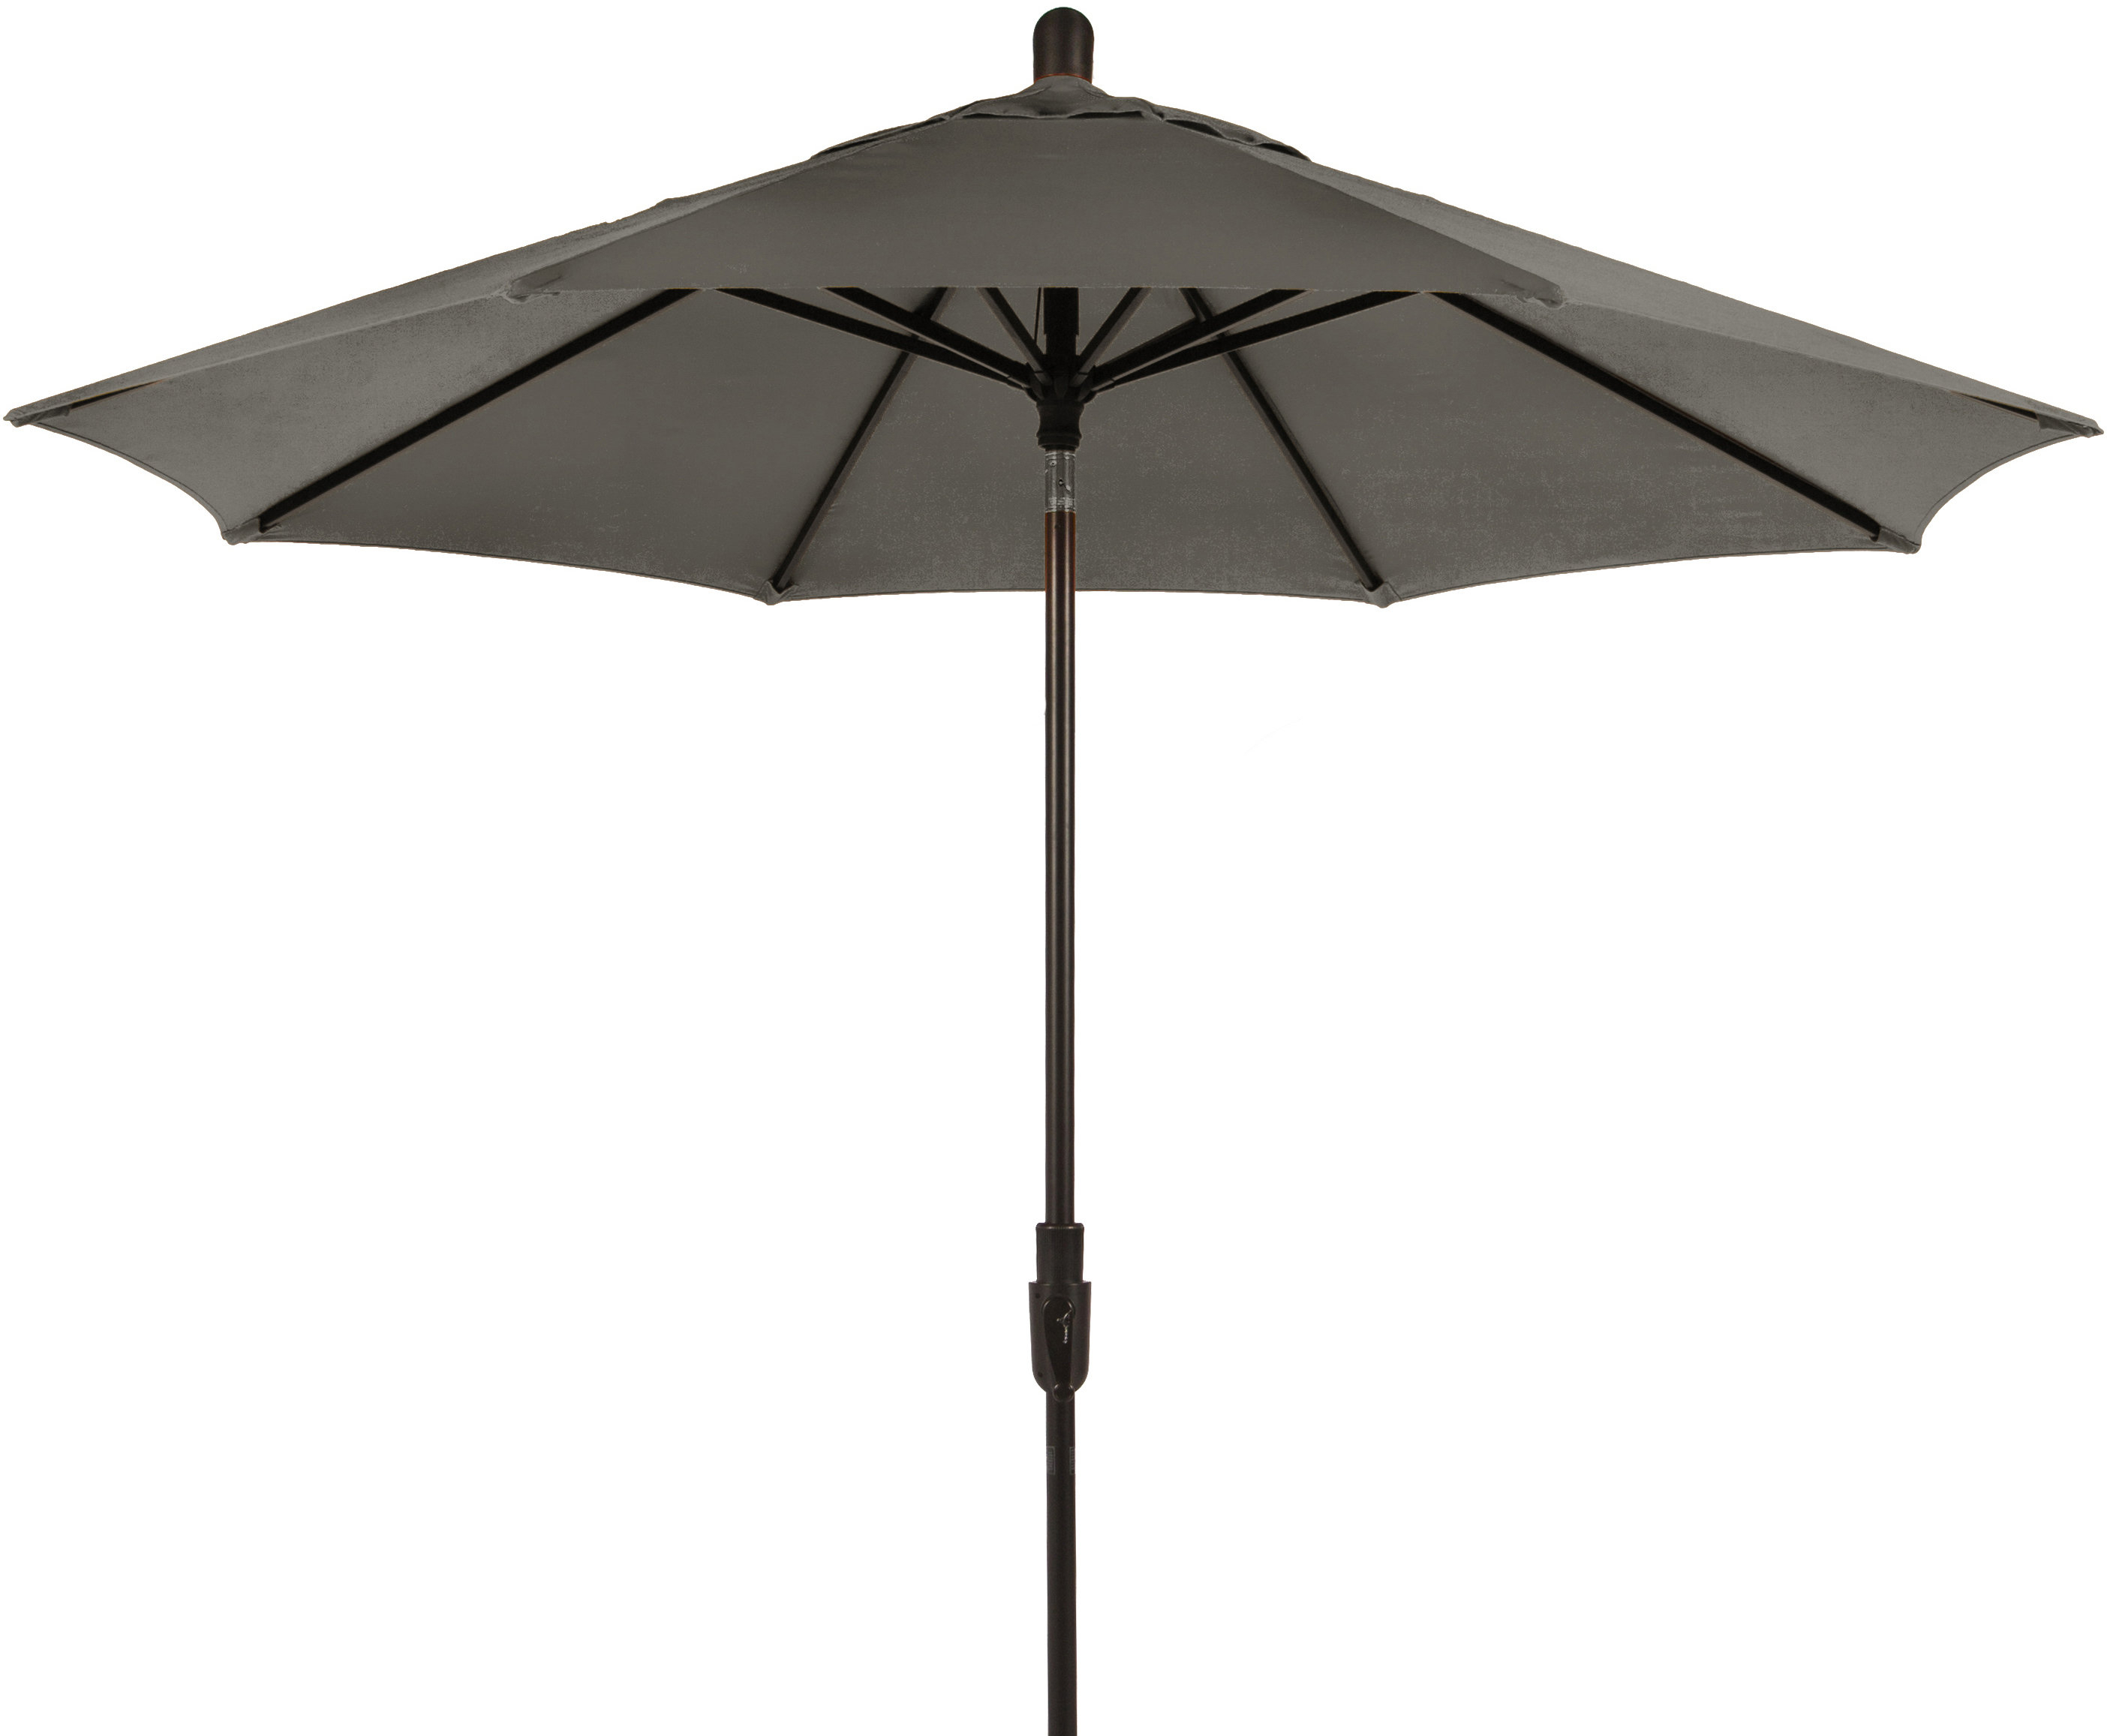 Wiebe 9' Market Umbrella Throughout Well Known Wiebe Auto Tilt Square Market Sunbrella Umbrellas (View 14 of 20)